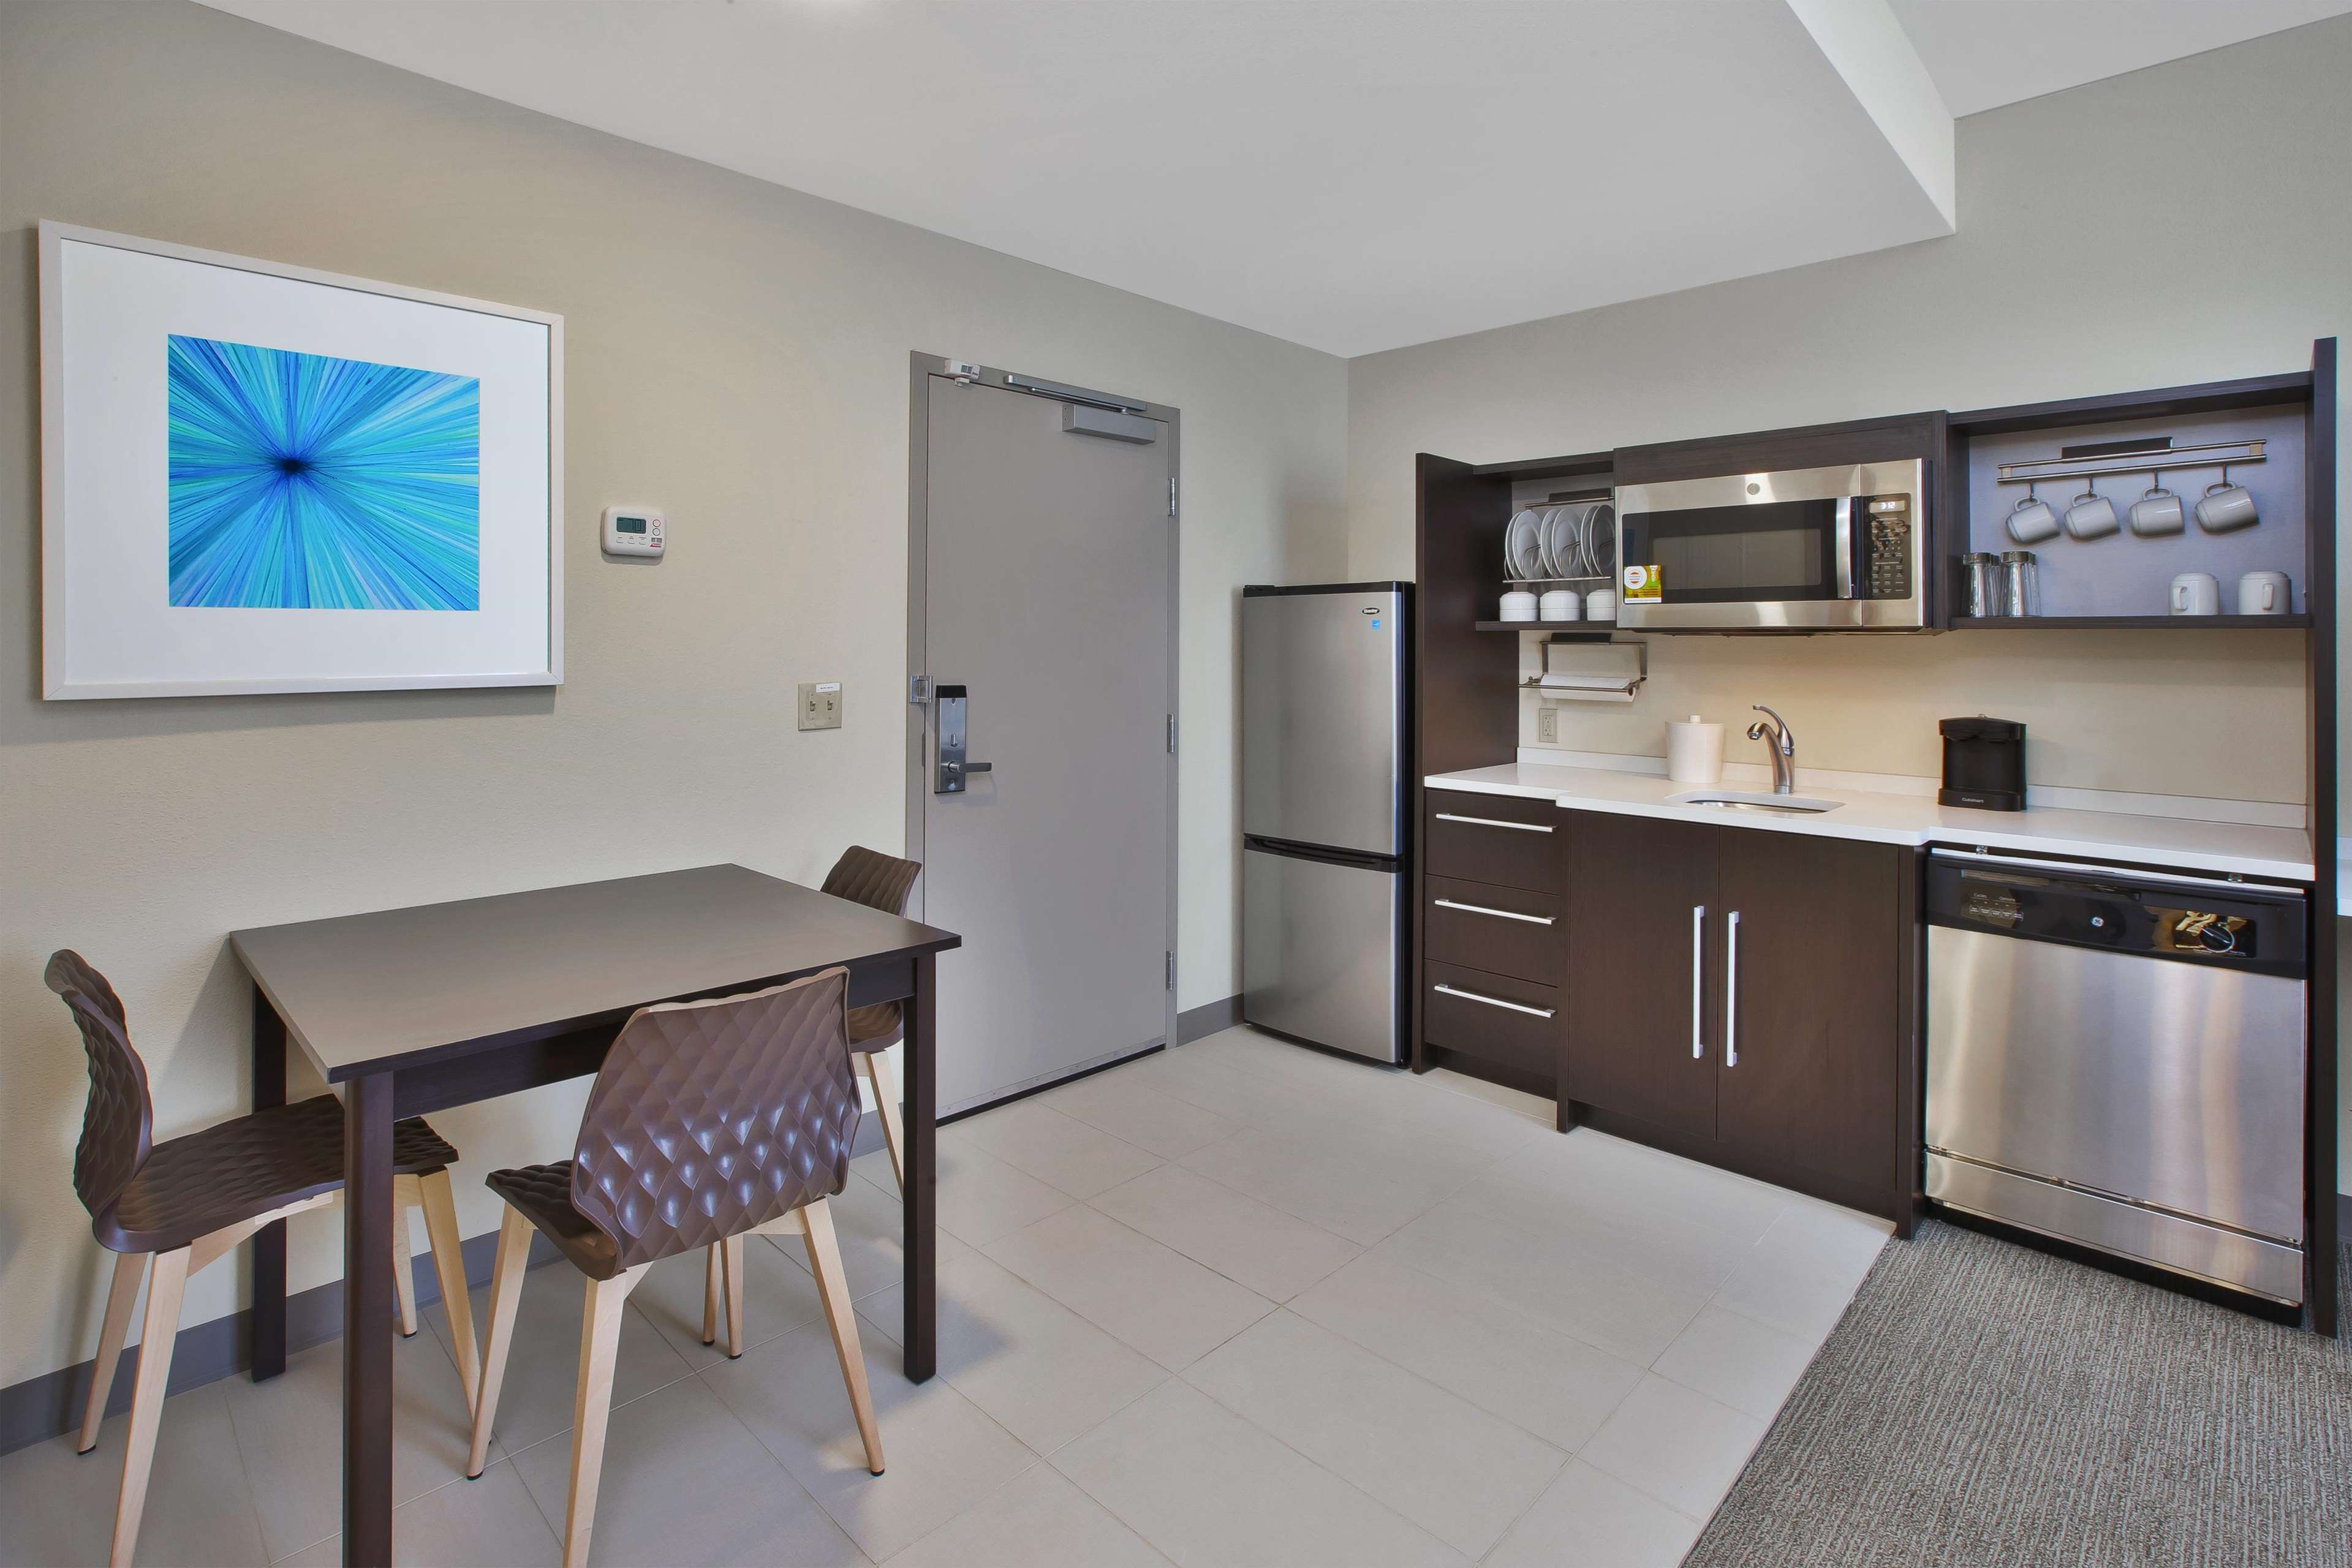 Home2 Suites by Hilton Holland image 16